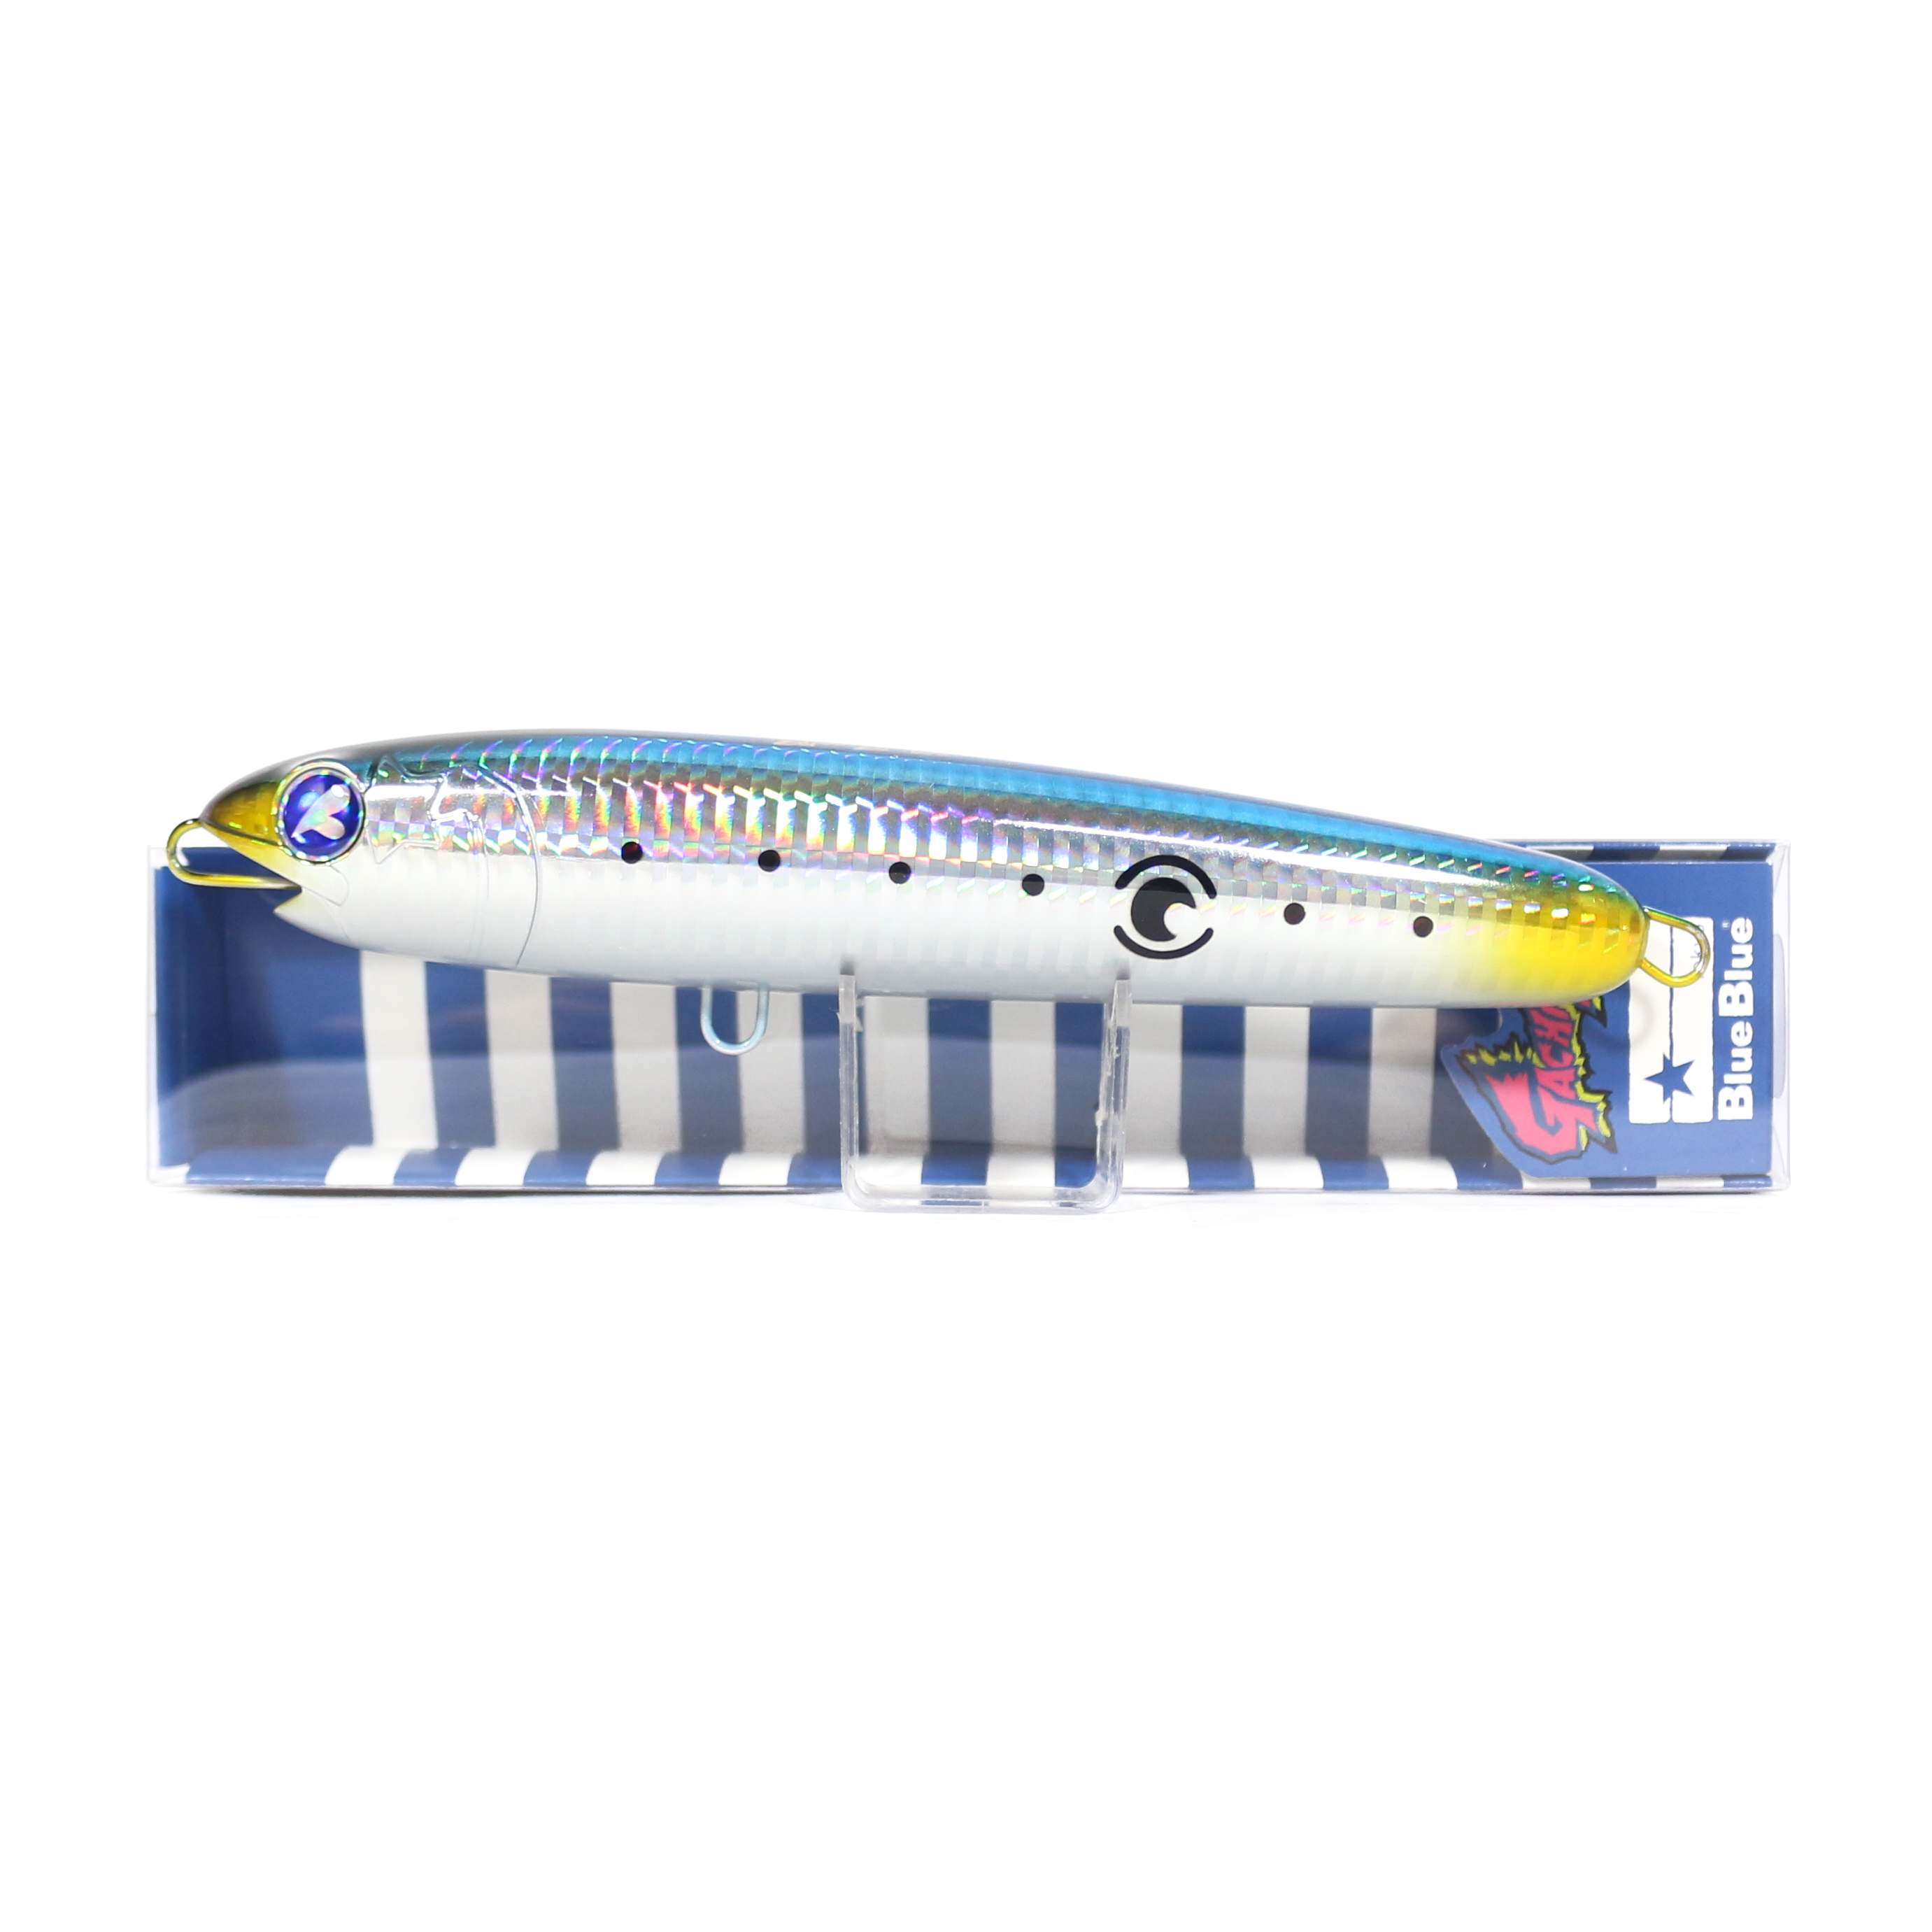 Blue Blue Gachipen 160 Pencil 53 gram Floating Lure 10 (0224)